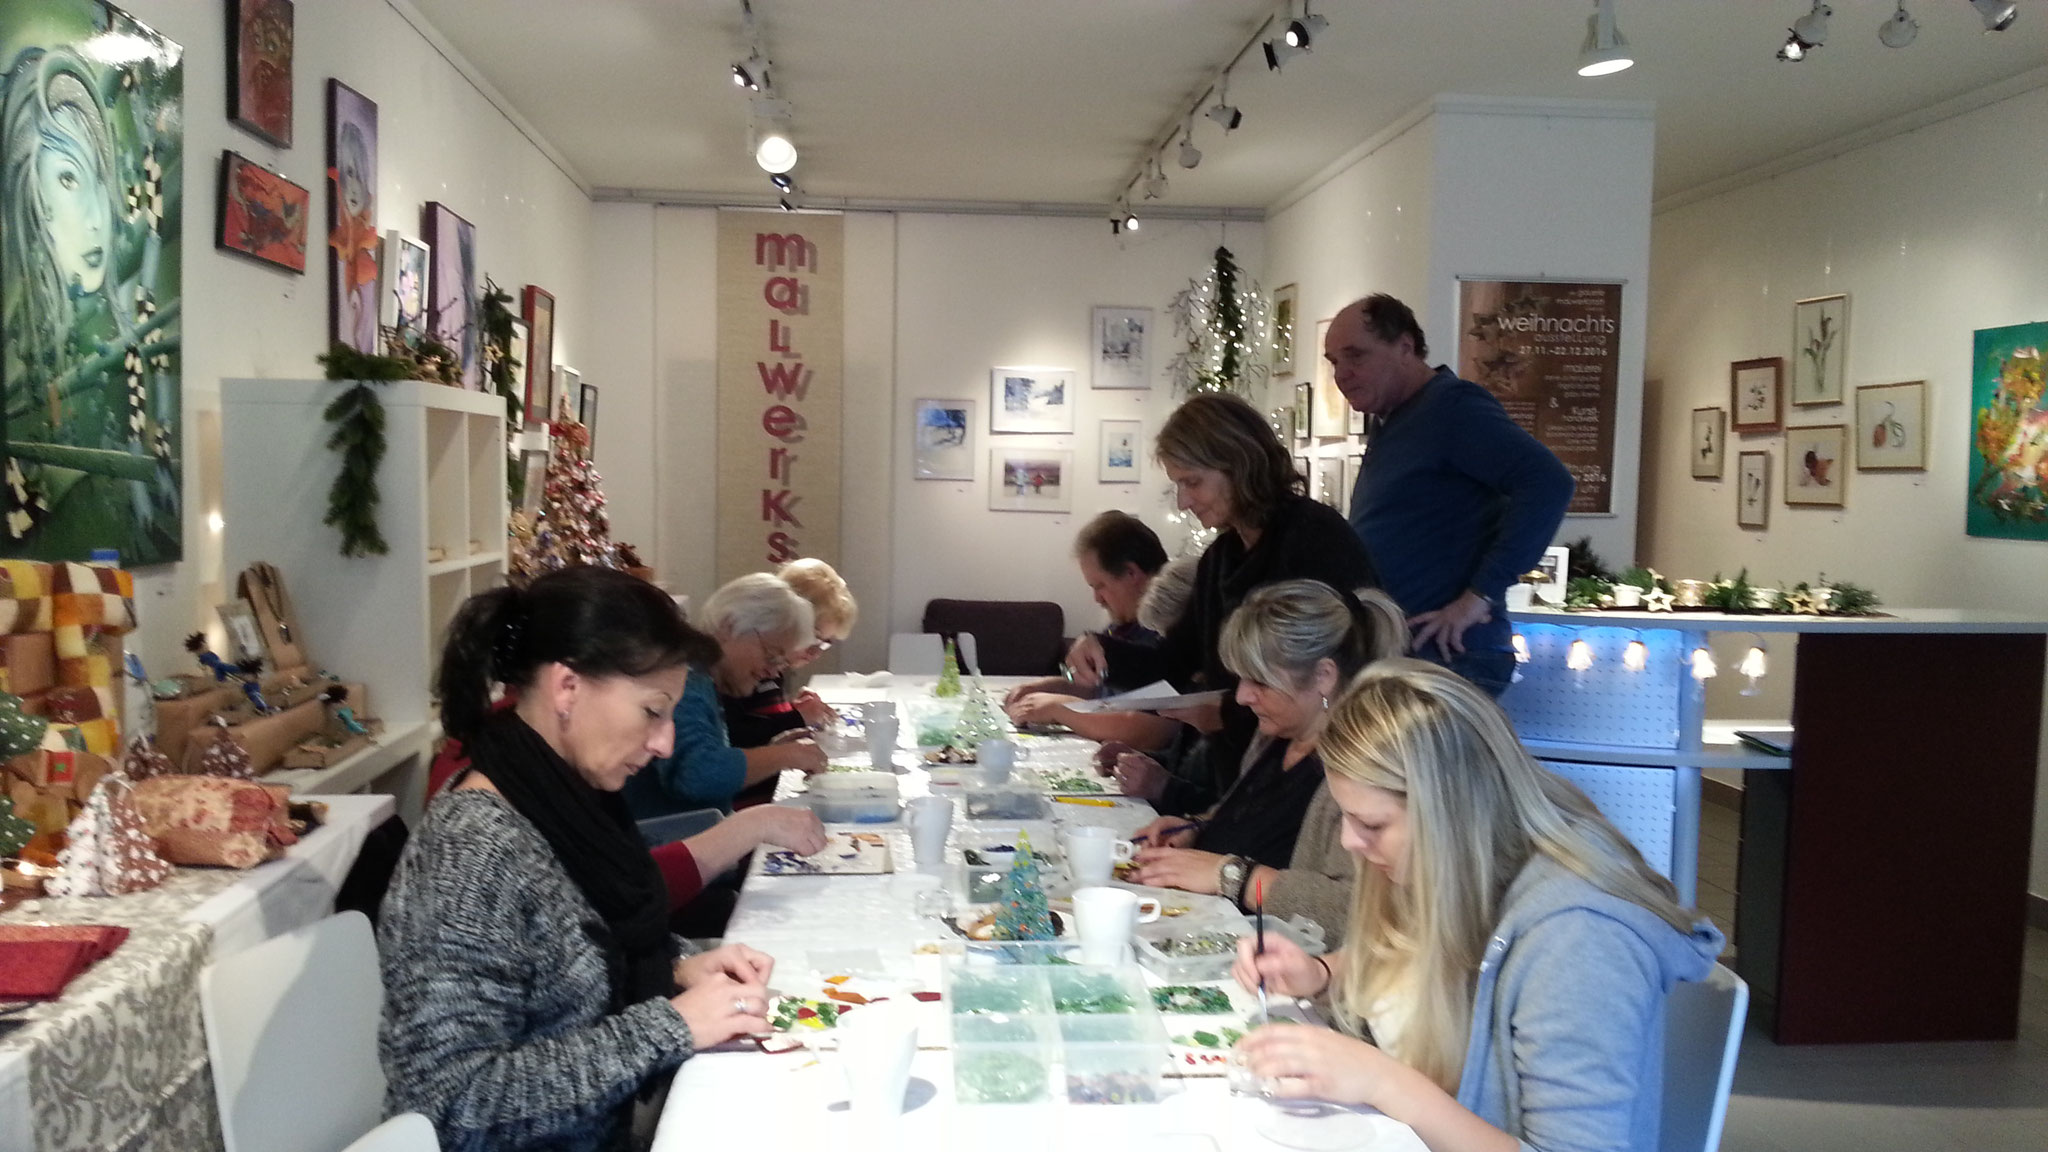 Glasfusion-Workshop mit Martin Suritsch